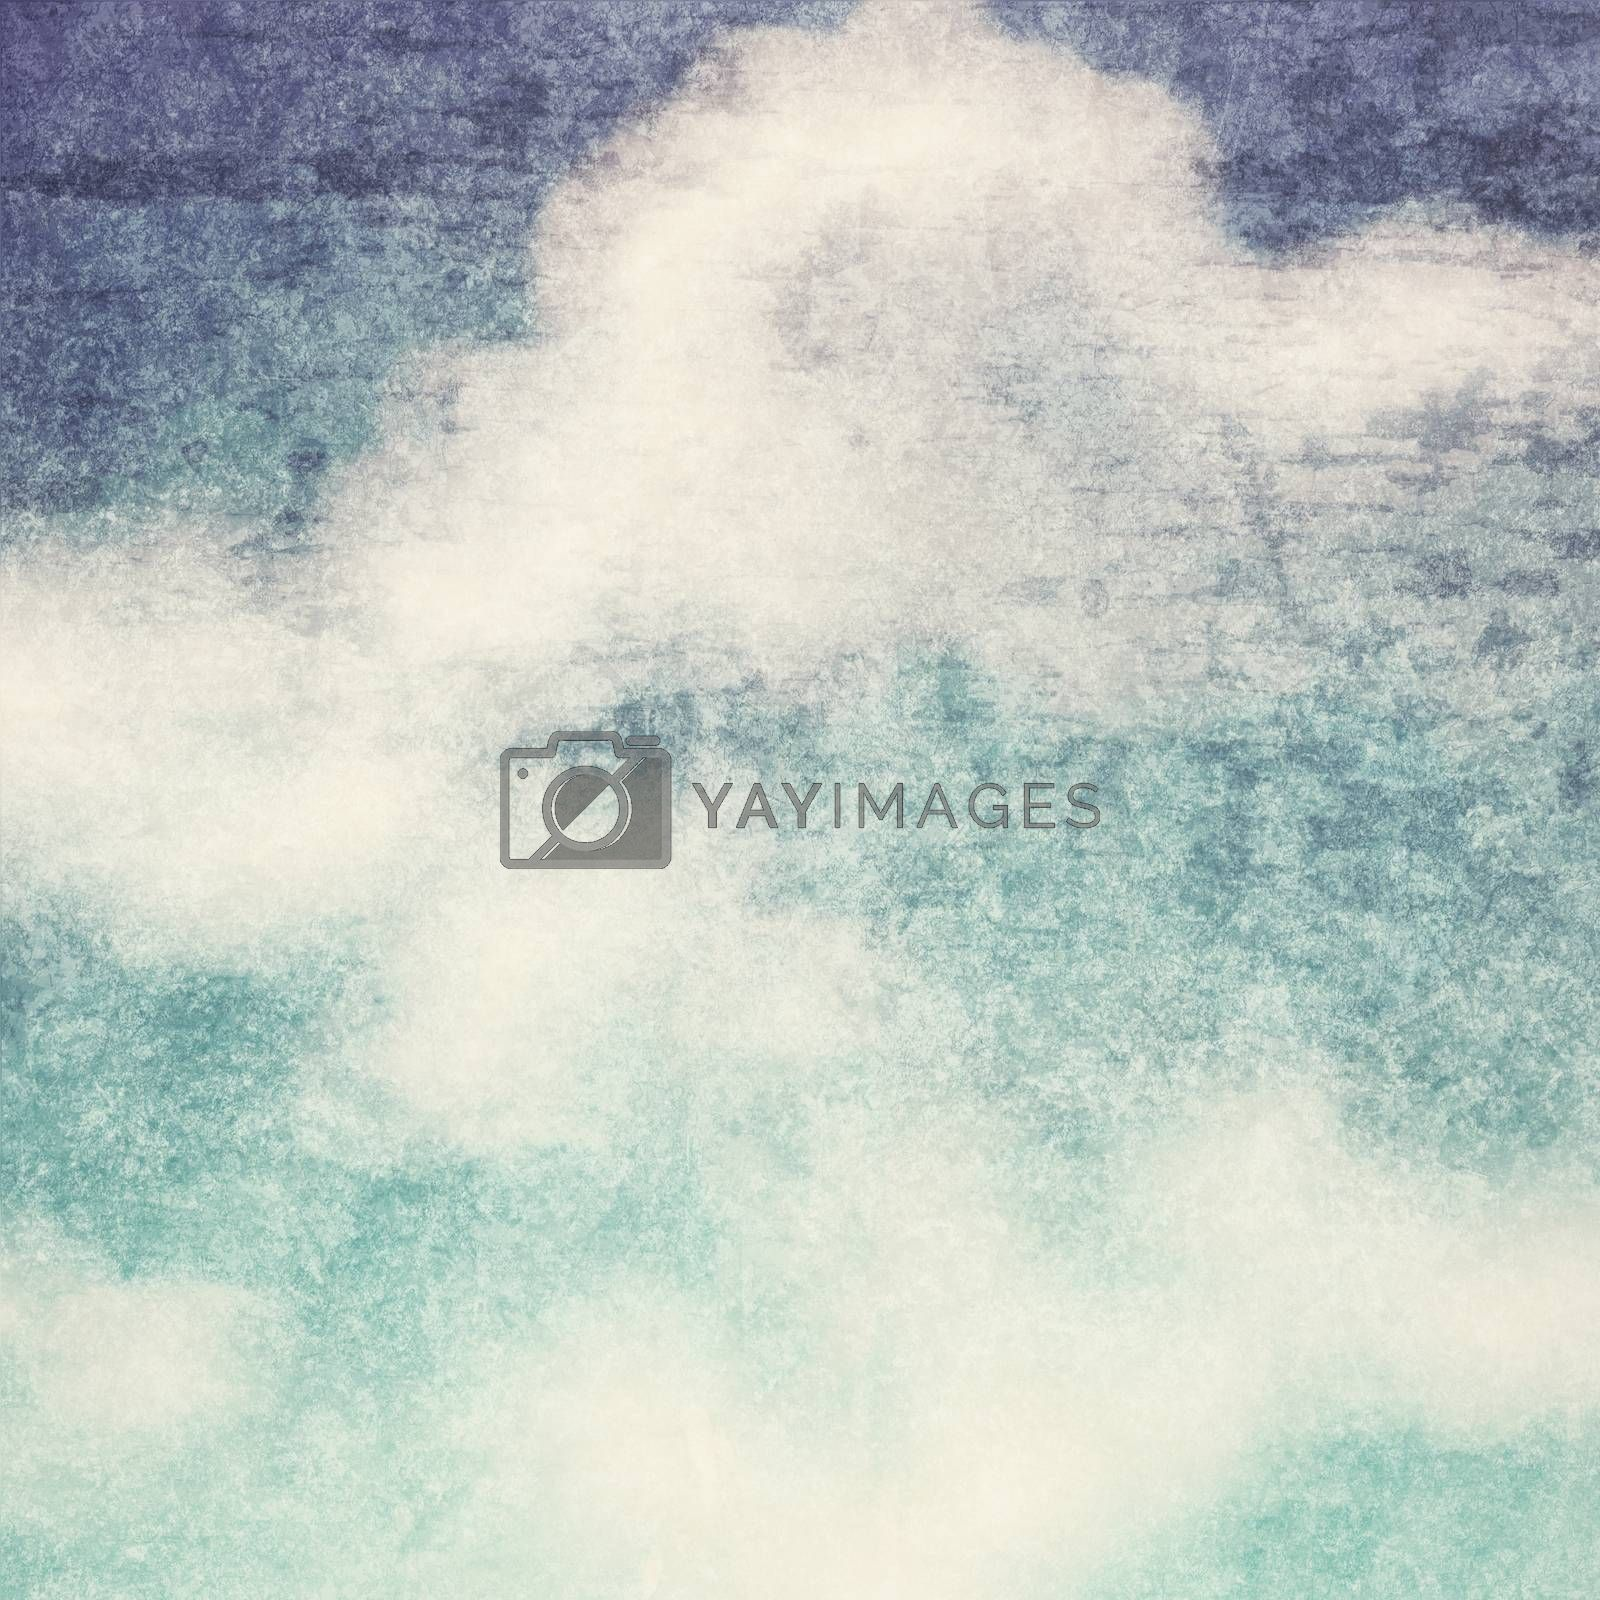 Royalty free image of Vintage background in the blue shade with clouds  by everythingpossible